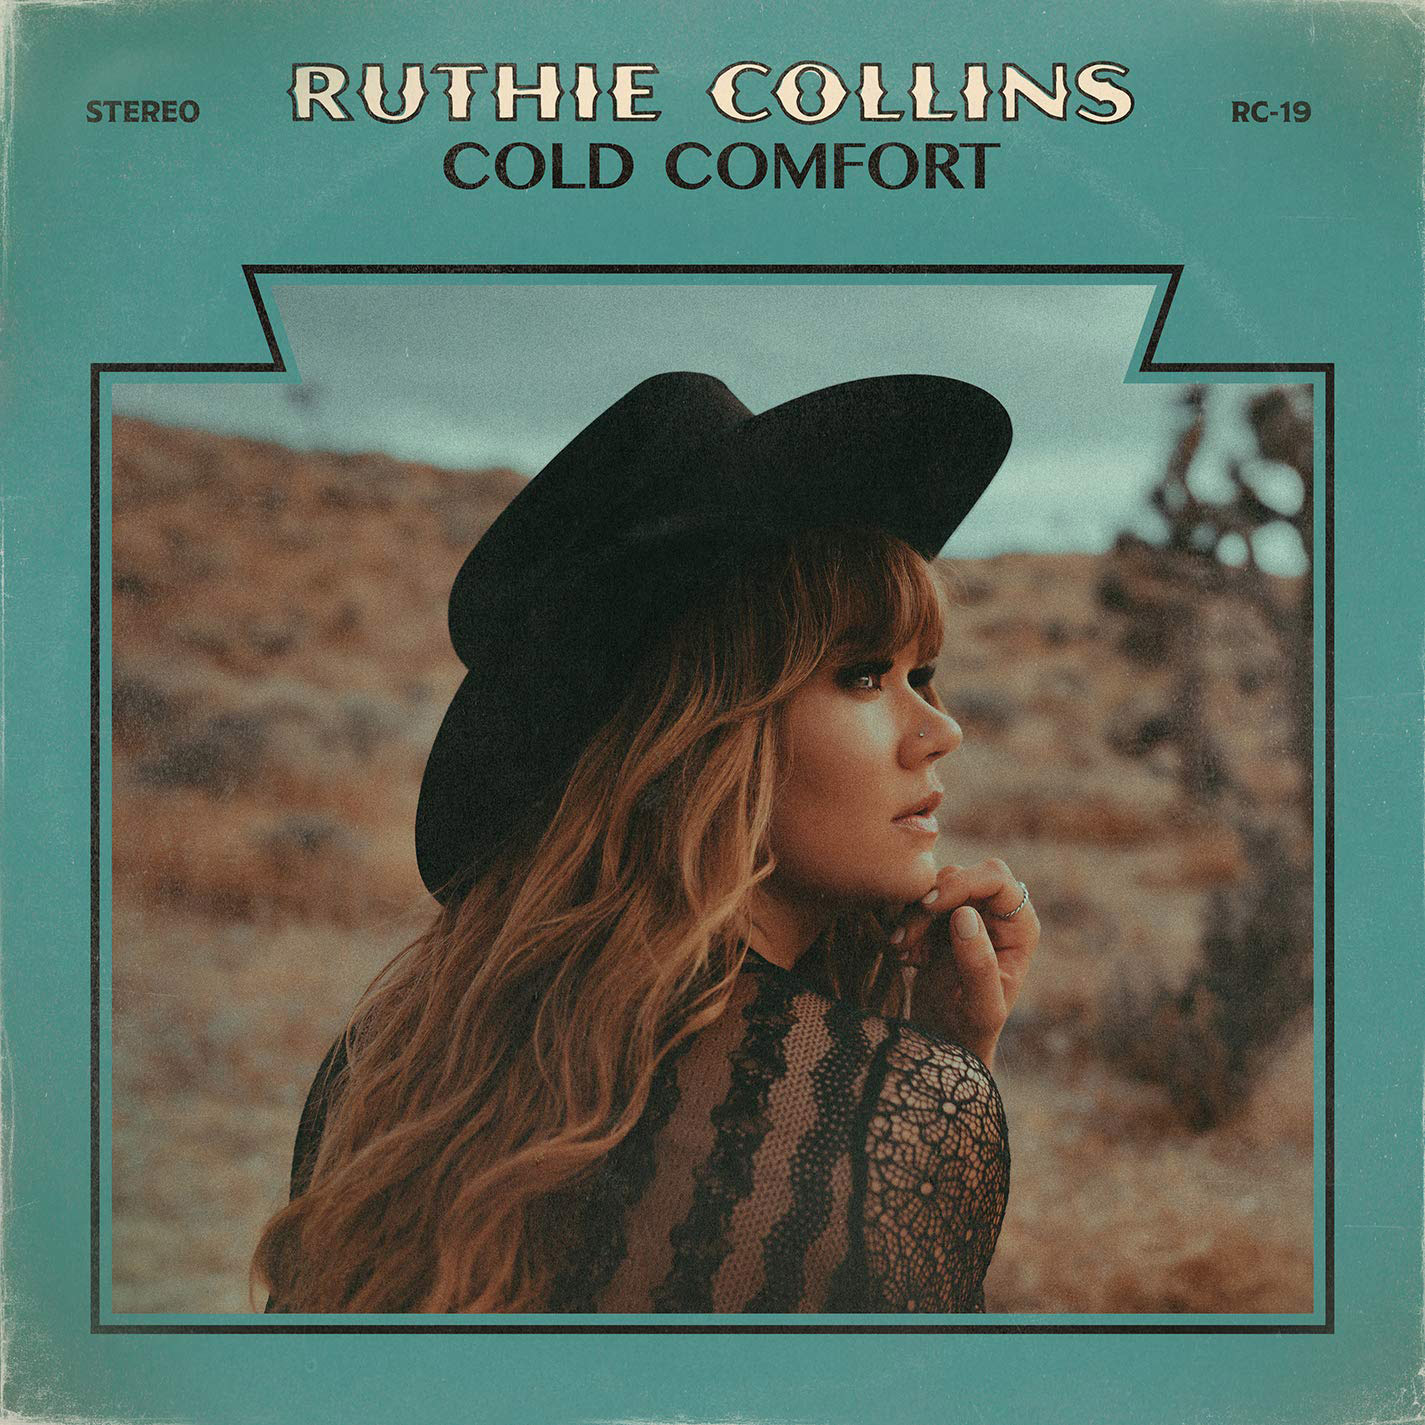 Ruthie Collins Cold Comfort